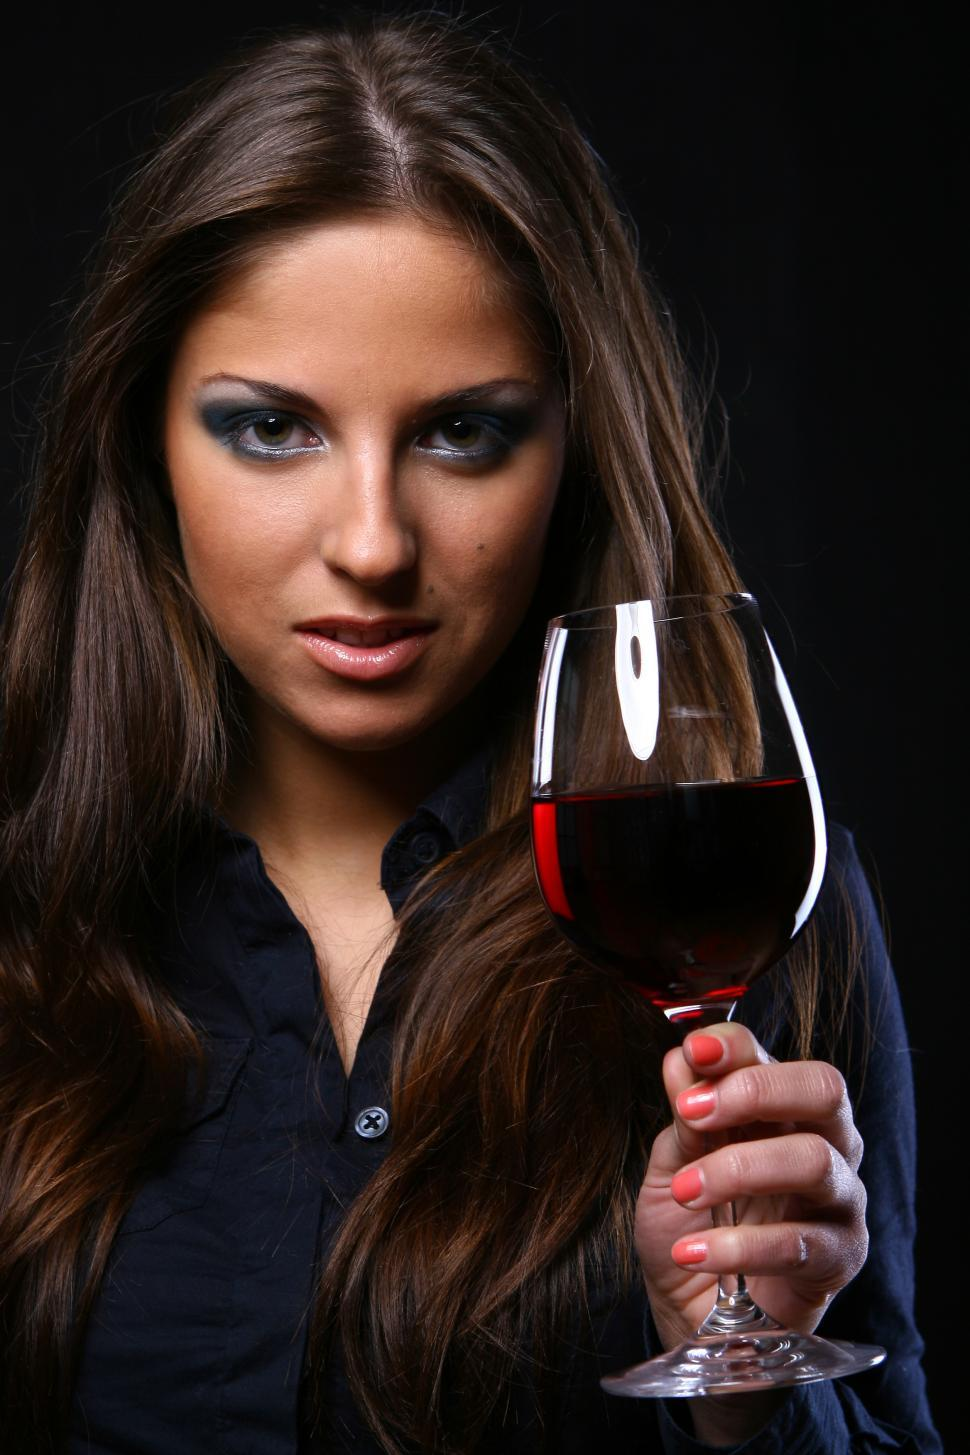 Download Free Stock Photo of beautiful woman drinking wine